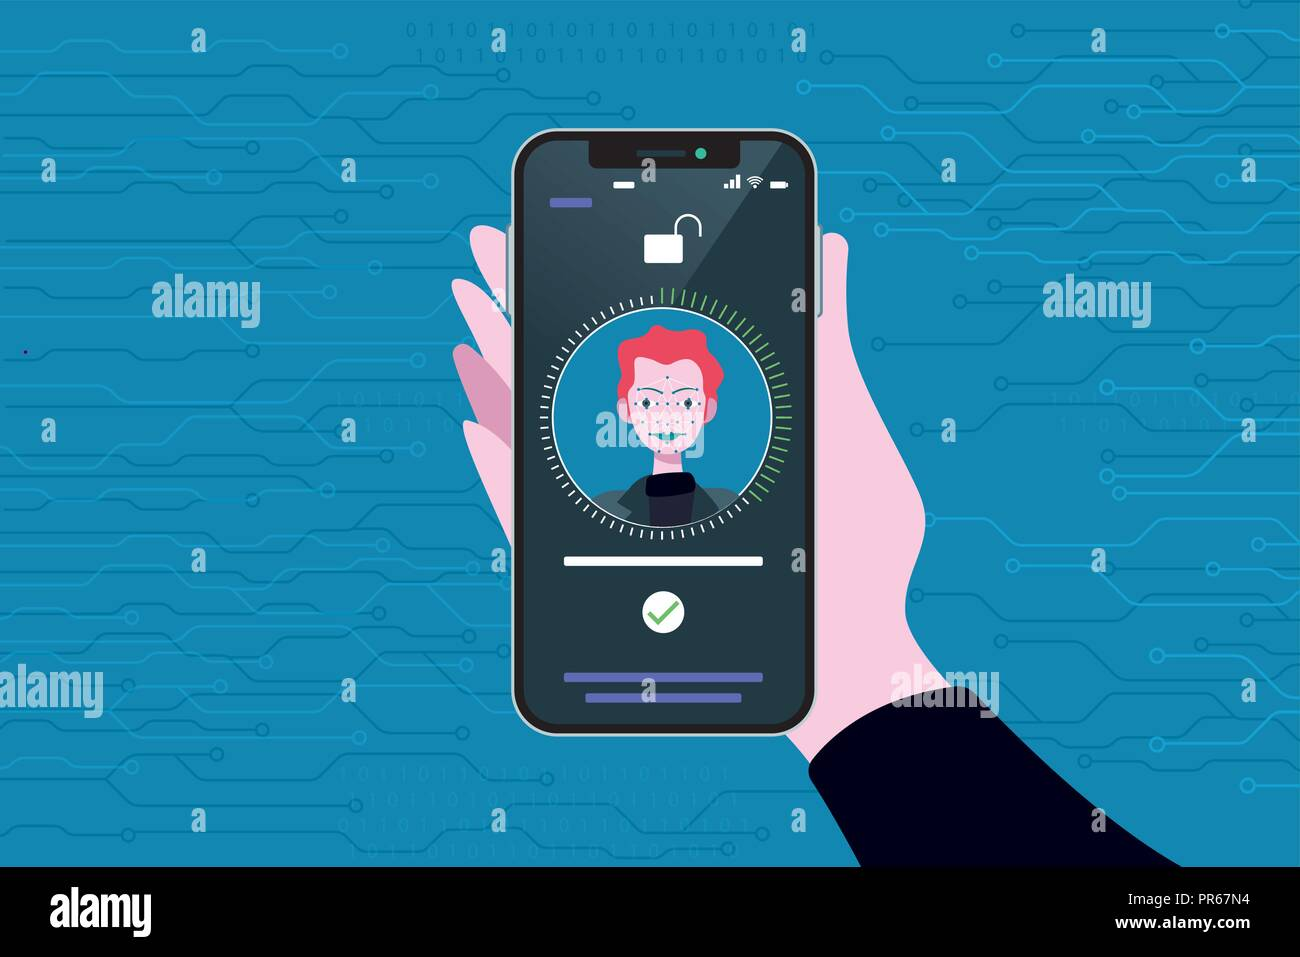 Face Recognition Technology used in a Smart Phone. Scanning og the face of a business man for facial recognition. - Stock Vector